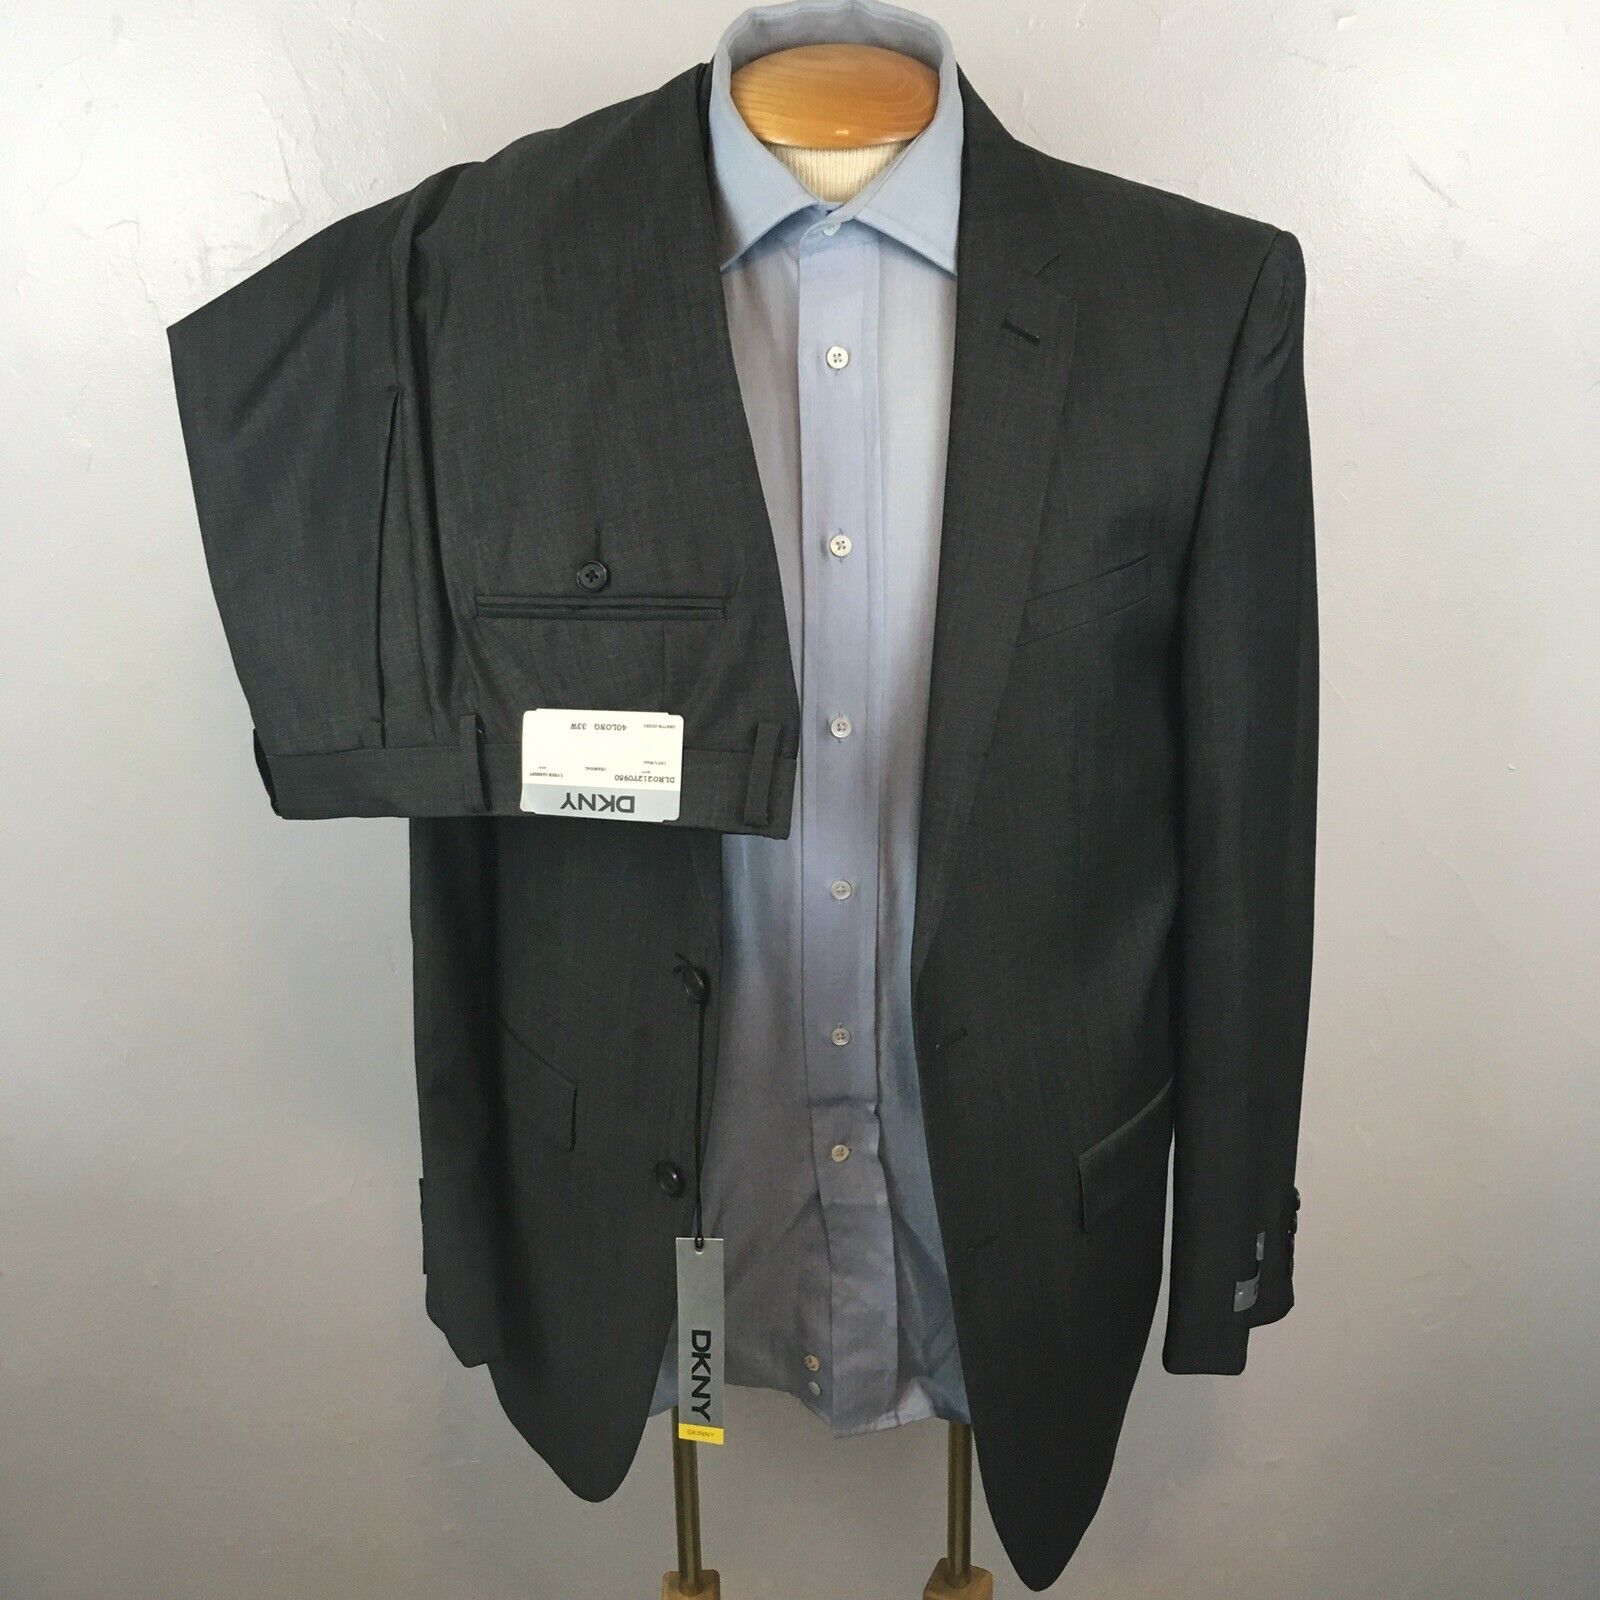 New dkny 2 piece mens suit solid charcoal slim fit nwt 40L 100% wool ea0094